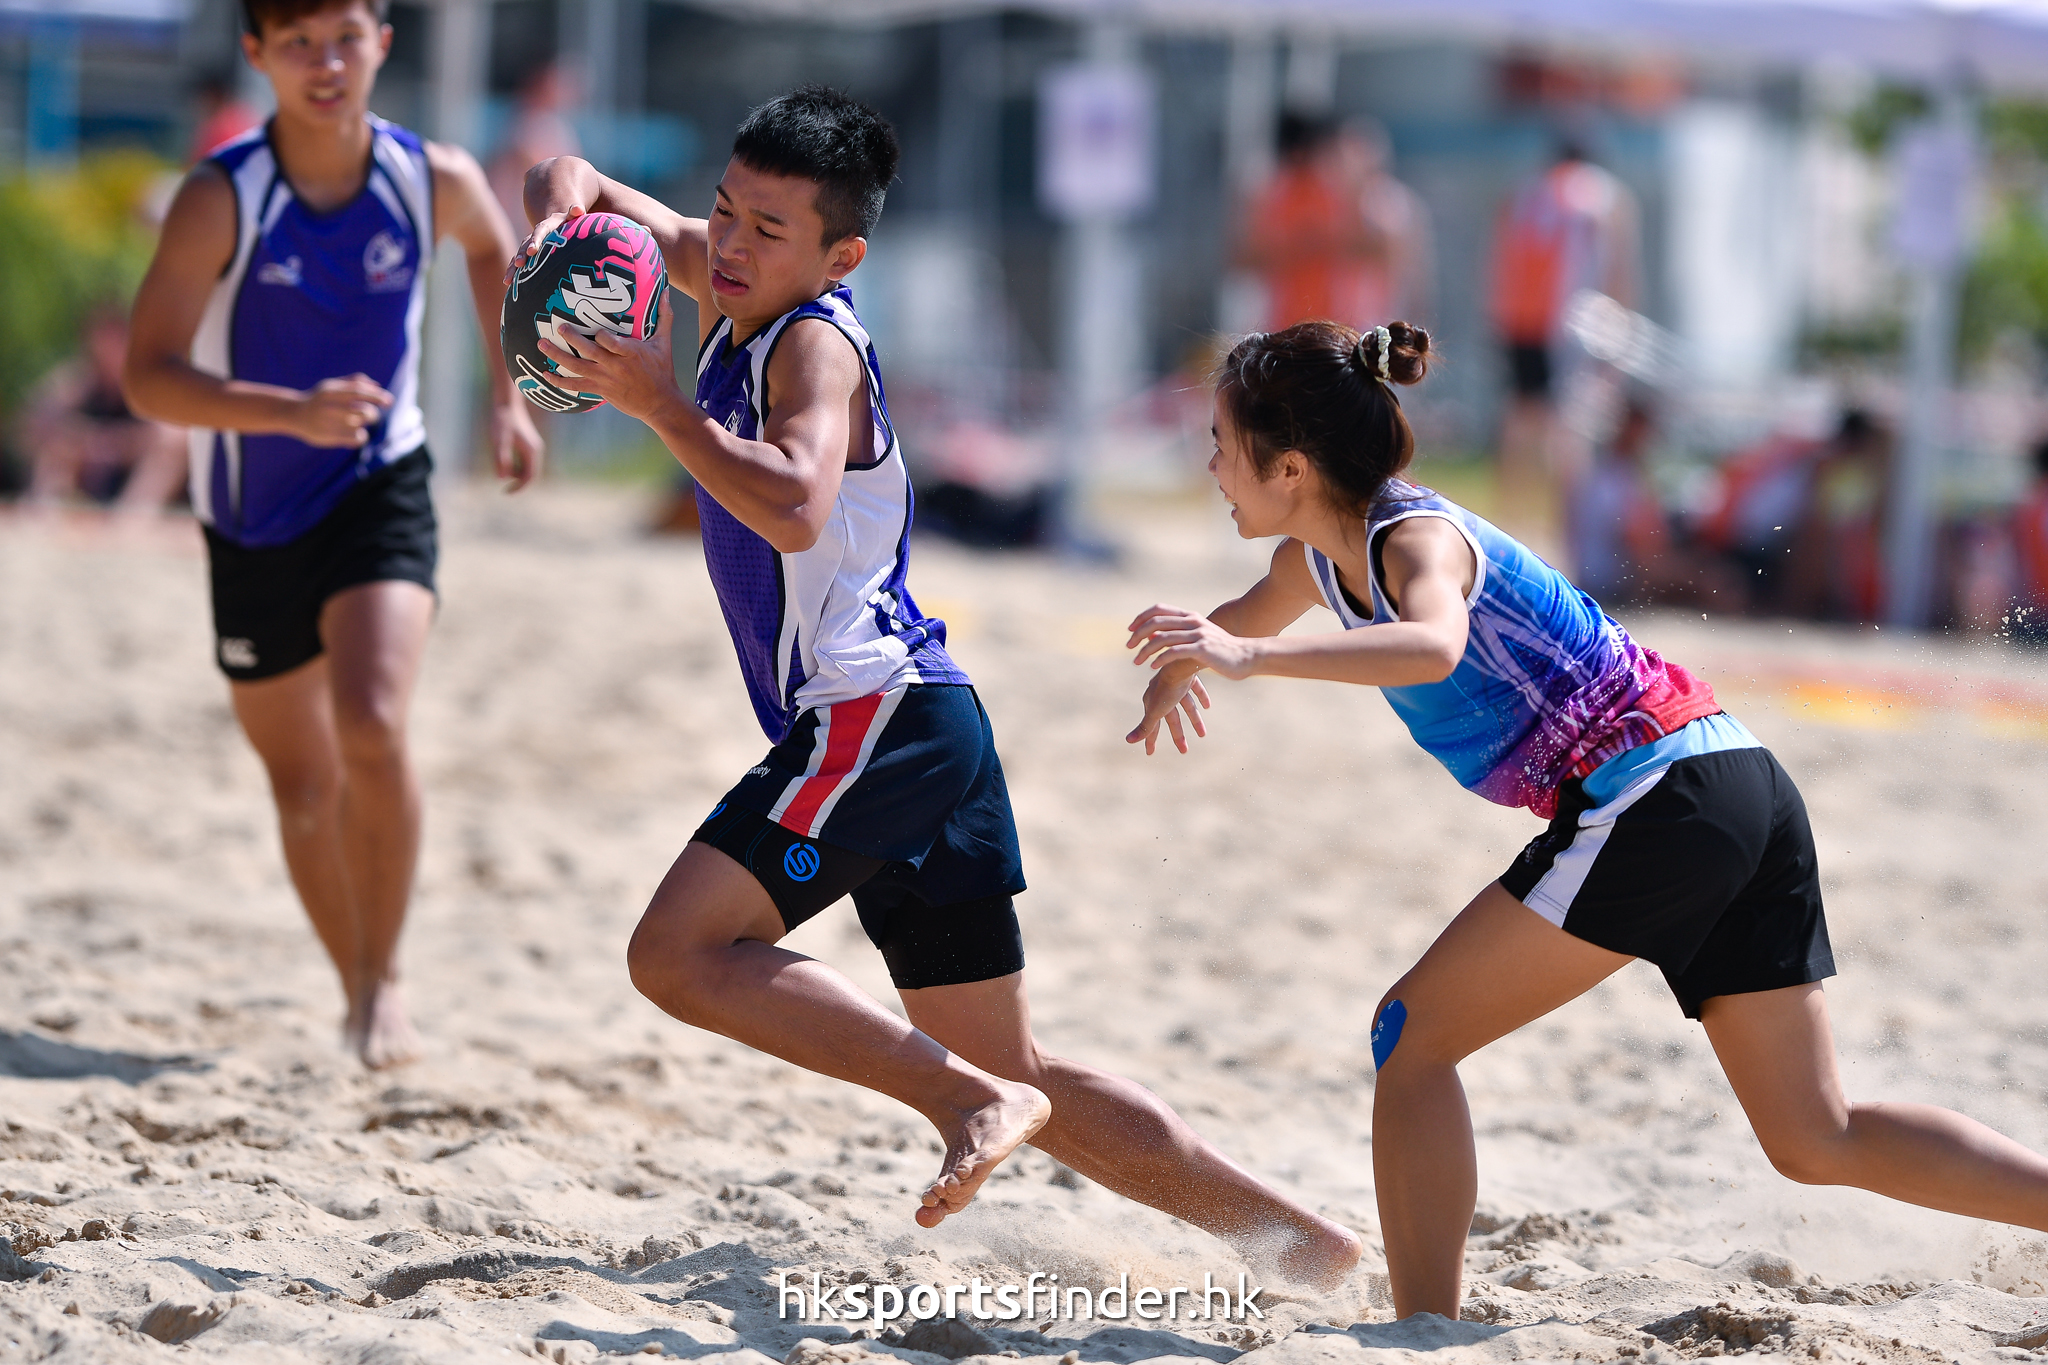 Her_GoldCoastTertiaryBeachRugby_16-11-12 11.48.31_000570.jpg